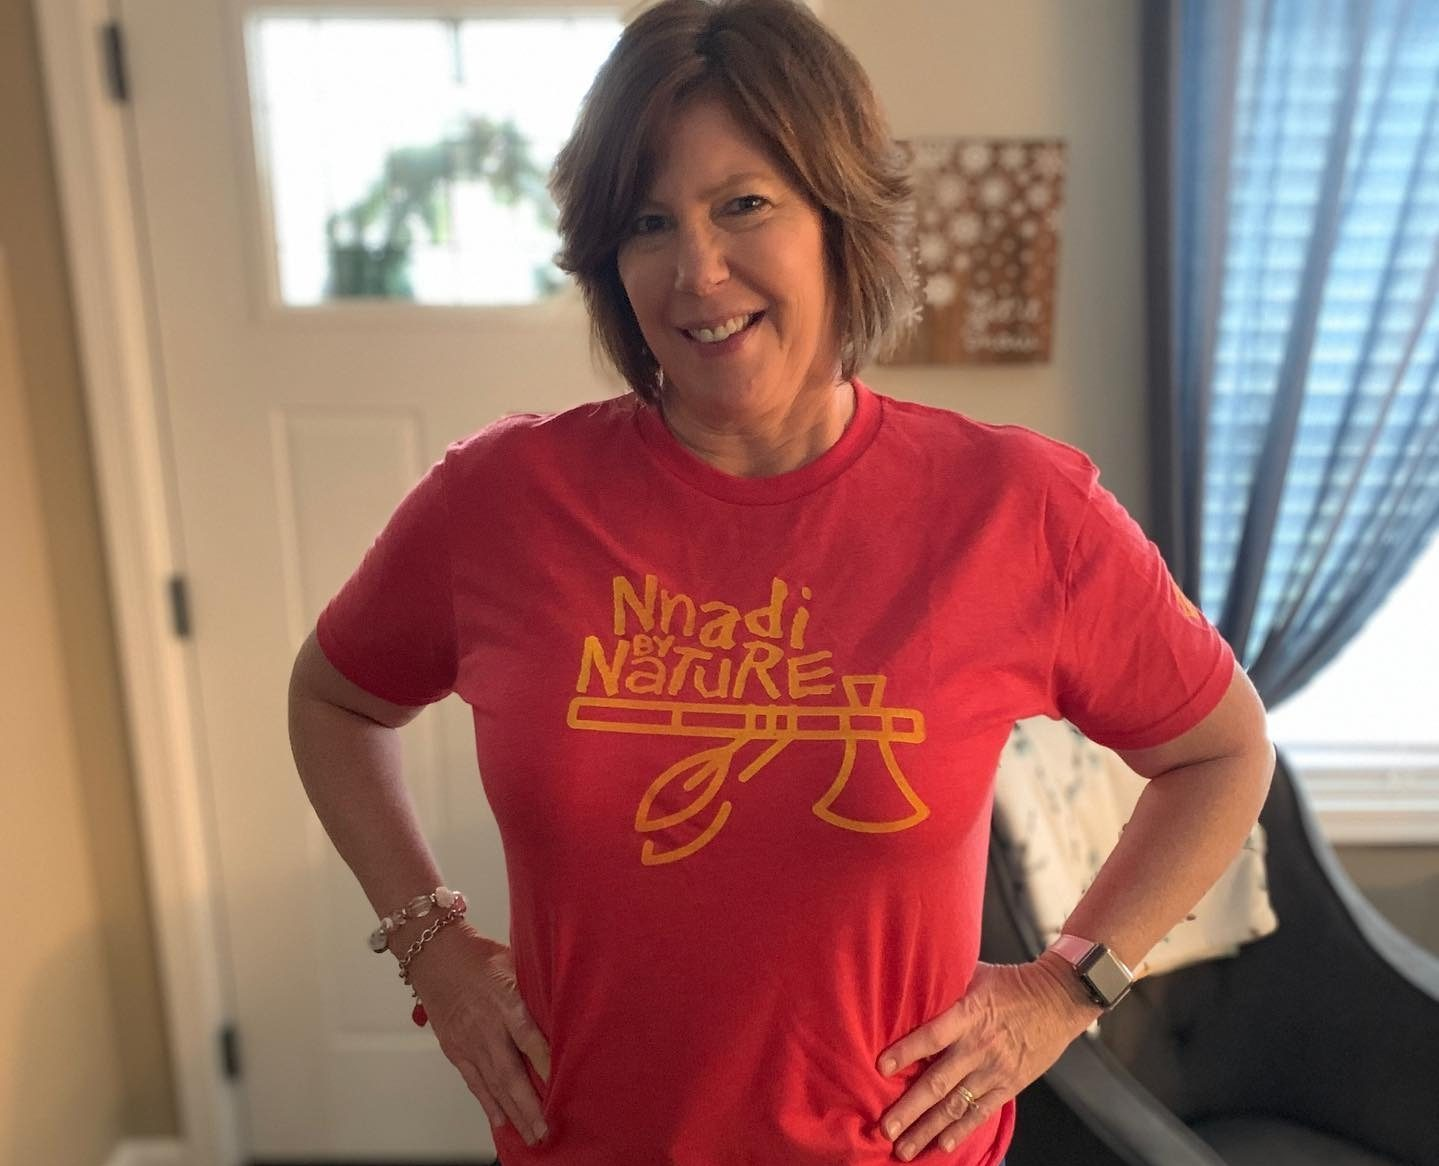 A huge fan, teacher Carol Seacrist promotes Derrick Nnadi, who is headed to the Super Bowl, by buying one of his t-shirts online and posting it on Facebook.